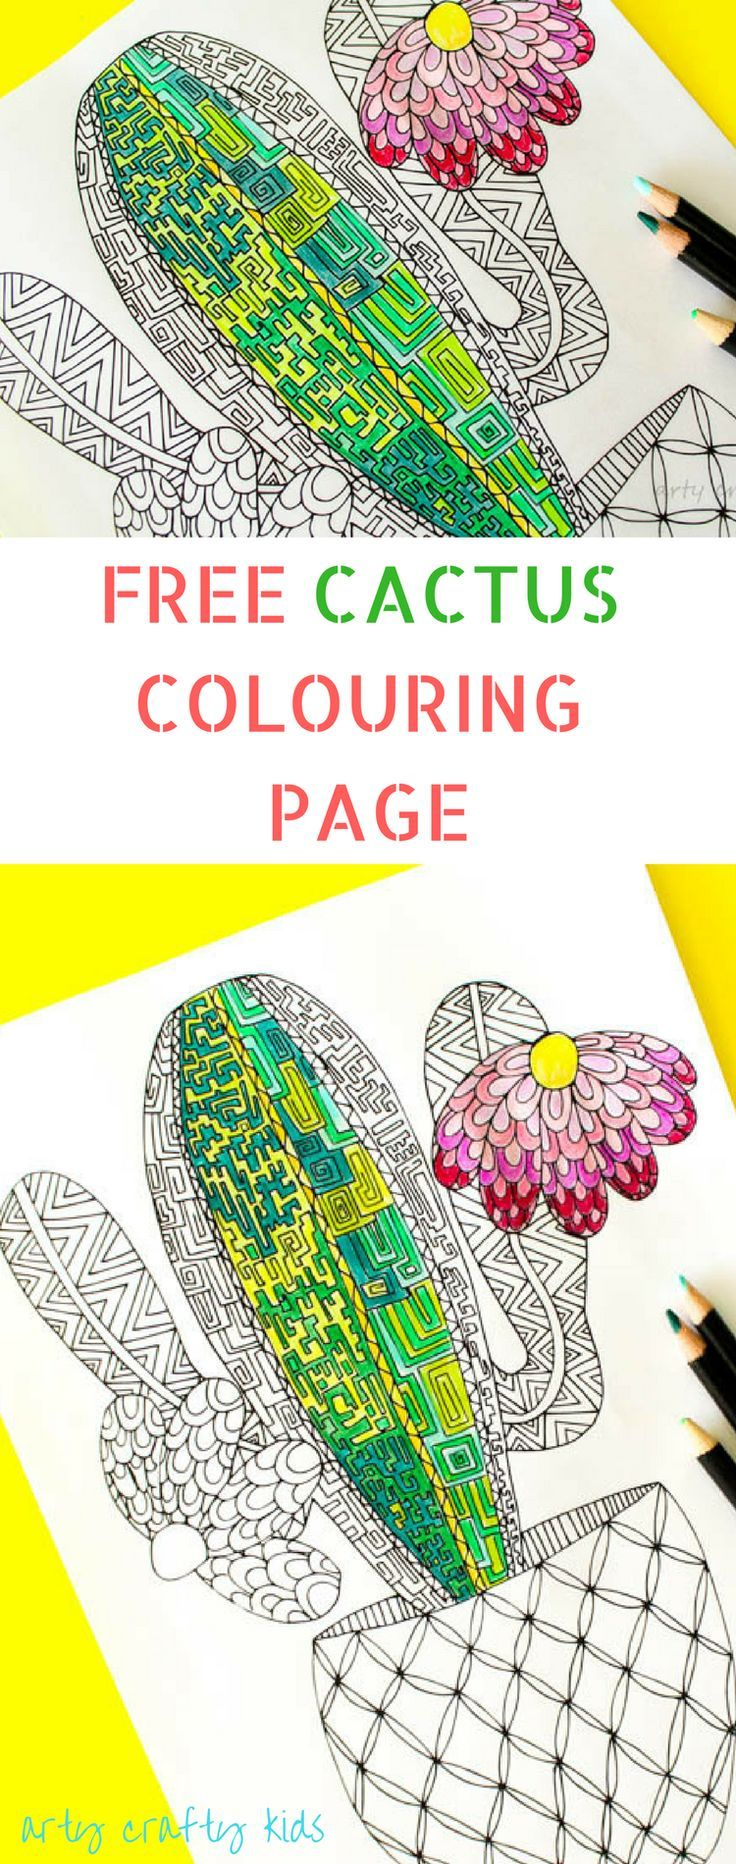 201 best Coloring Pages images on Pinterest | Crafty kids, Adult ...